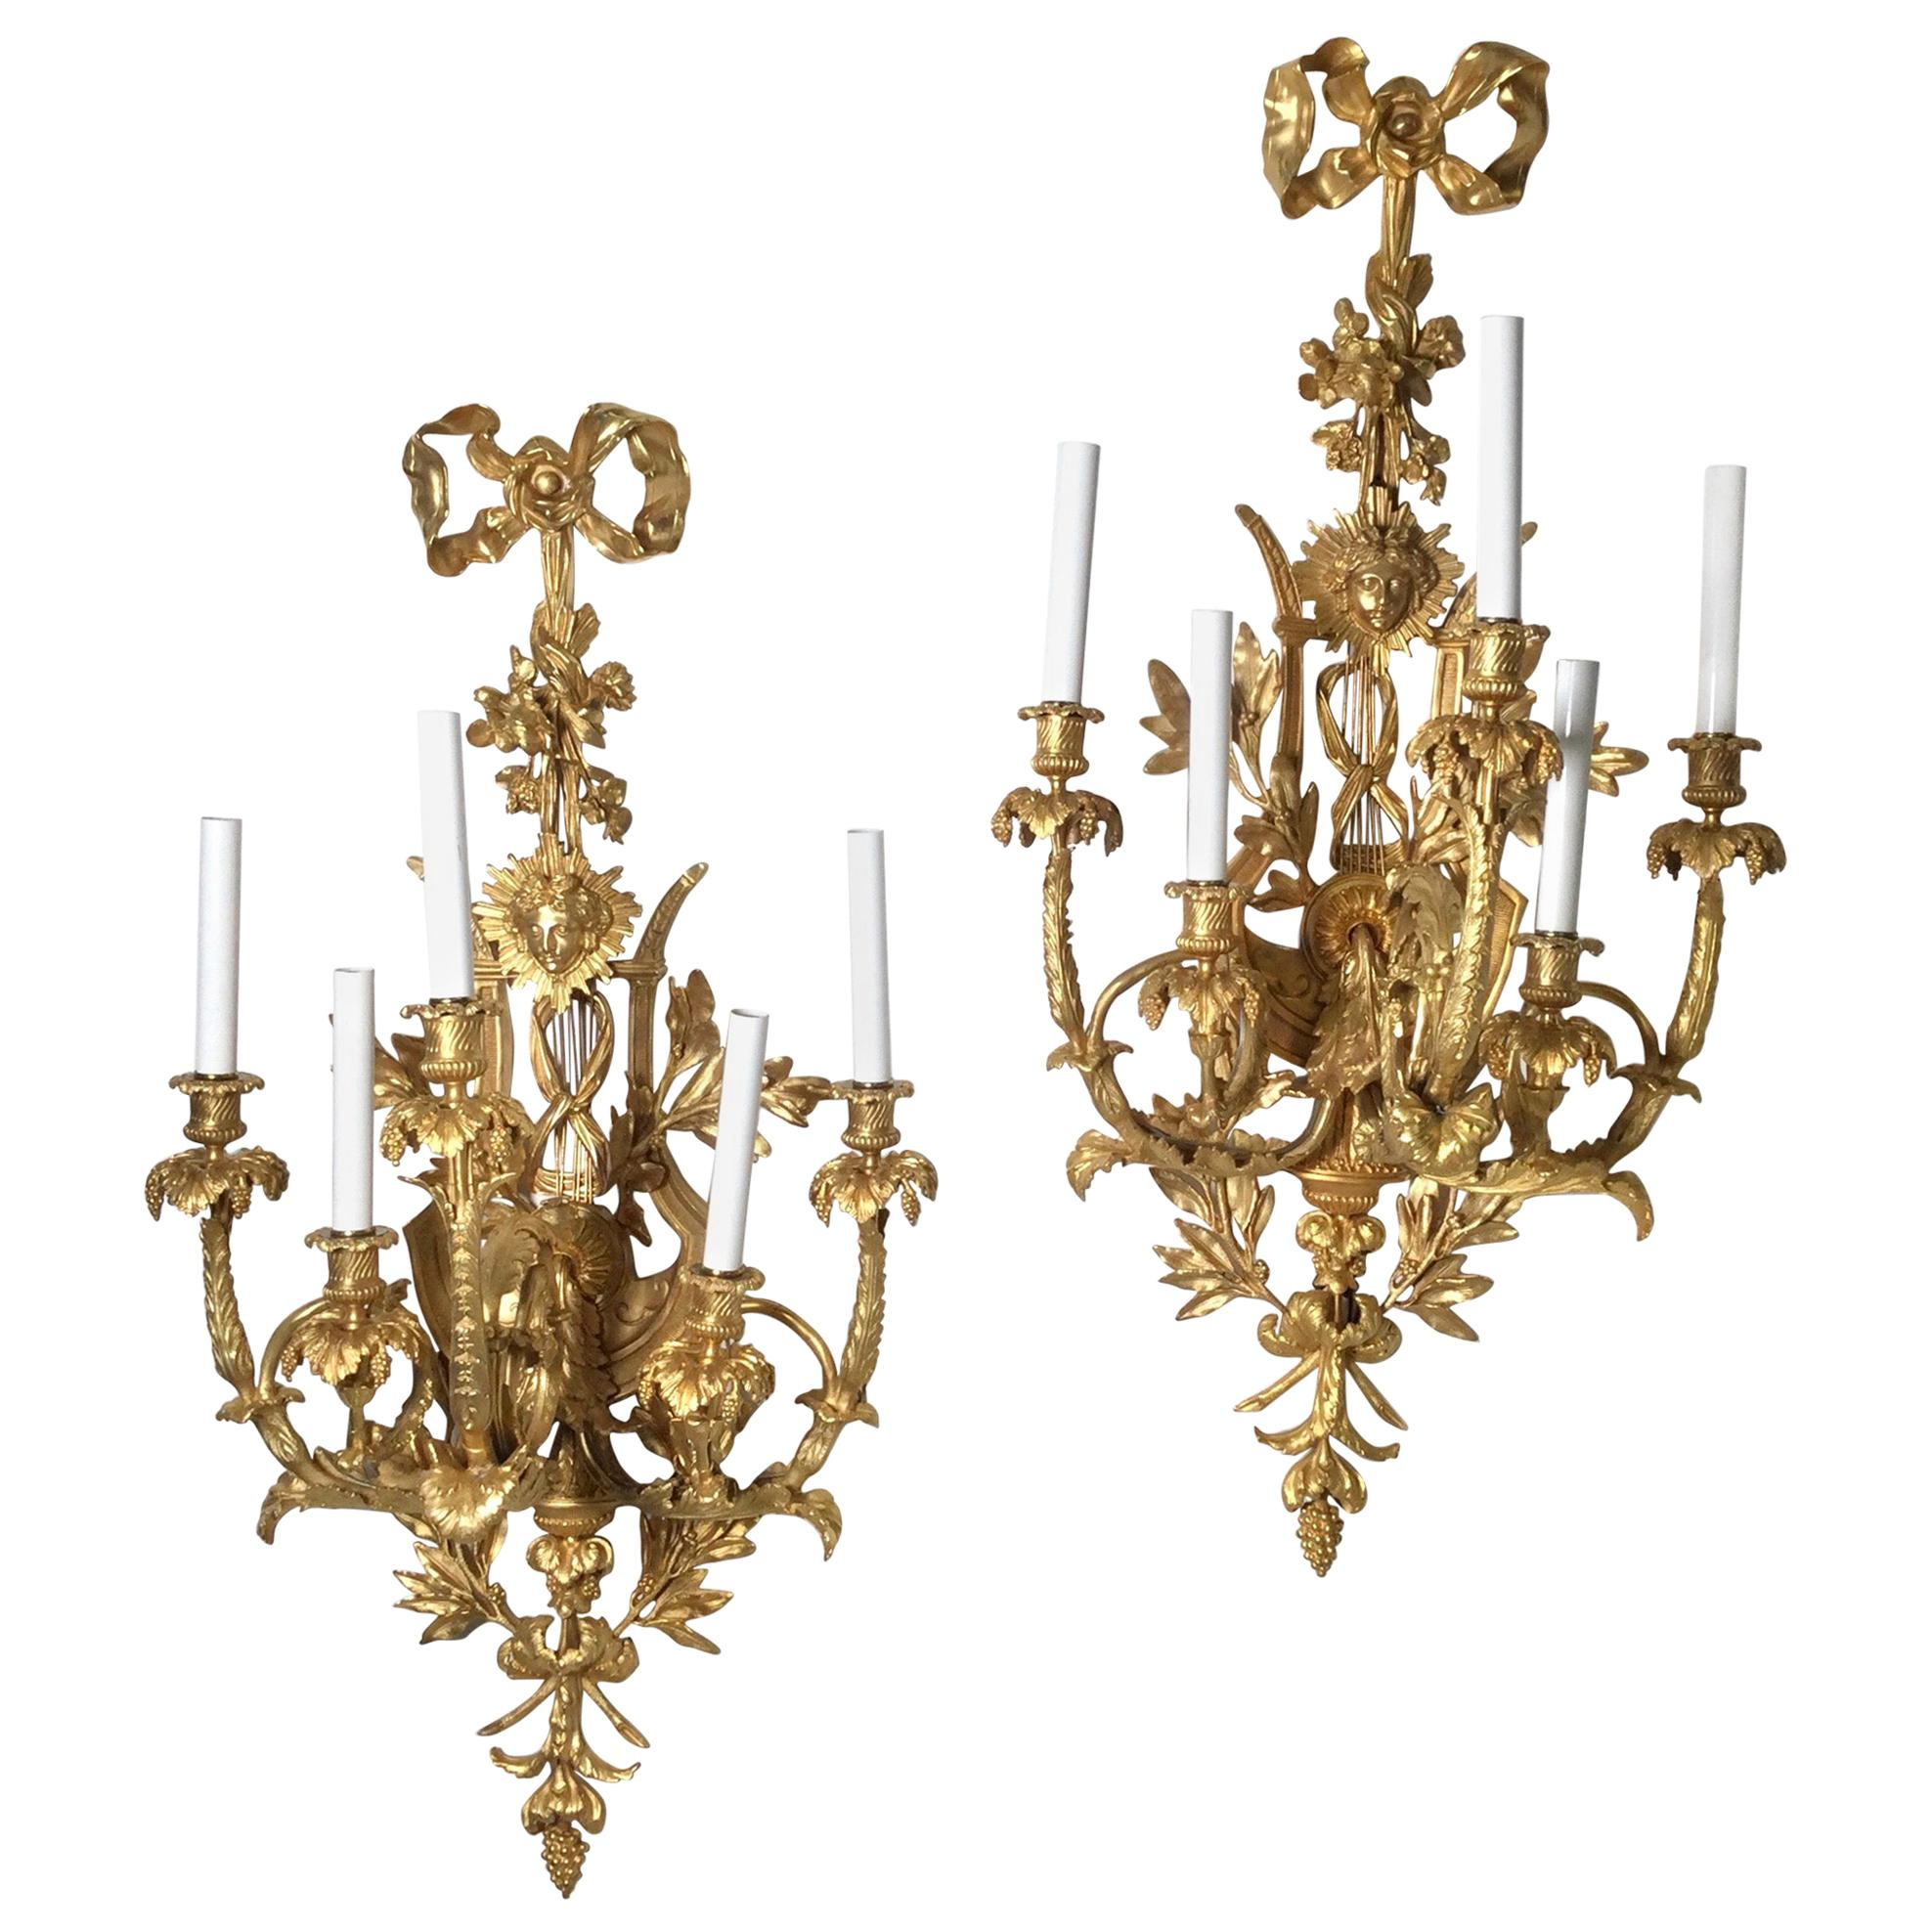 Pair of Impressive French Gilt Bronze Wall Sconces